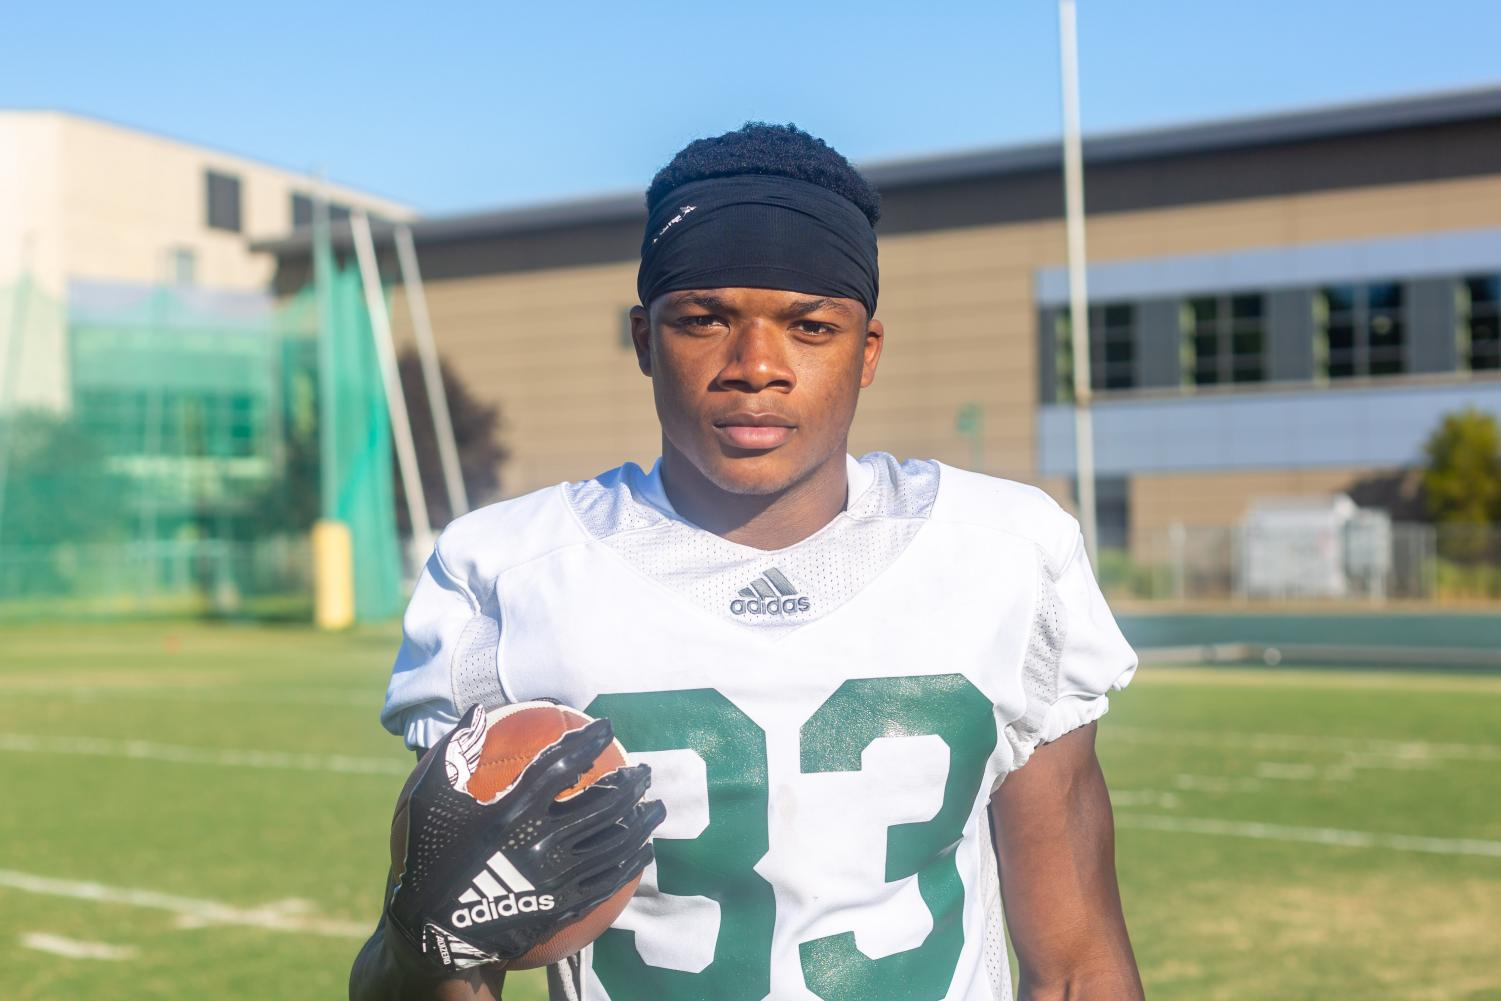 Elijah Dotson, Sac State junior running back, poses for a photo after practice on Wednesday, Sept. 4, at the practice field. Dotson was named to the All-Big Sky first team in 2018, becoming the first Hornet RB to do so since 2000.